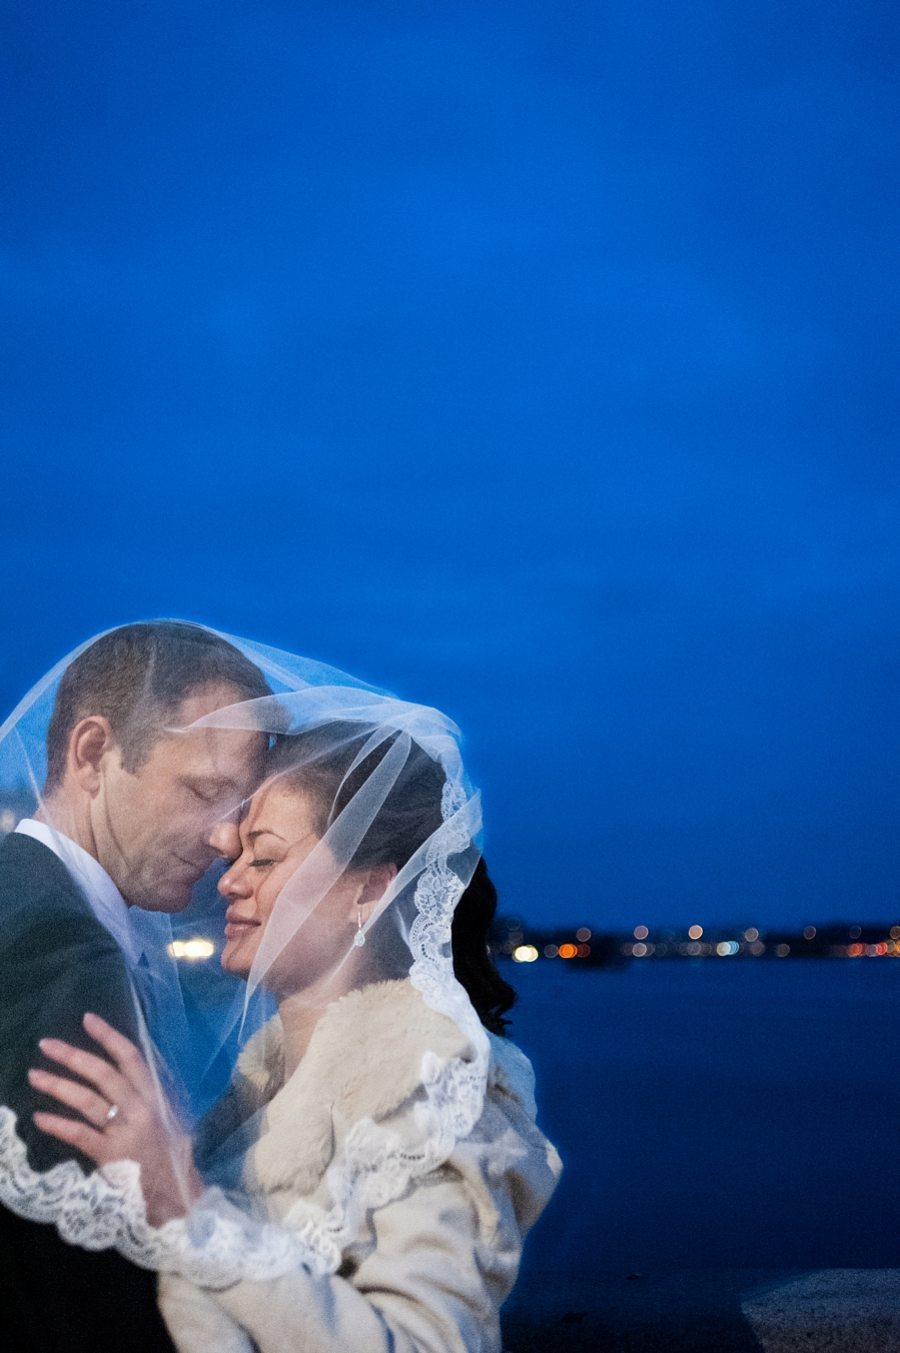 Bride and groom at their winter wedding in the evening Copenhagen wedding photographer